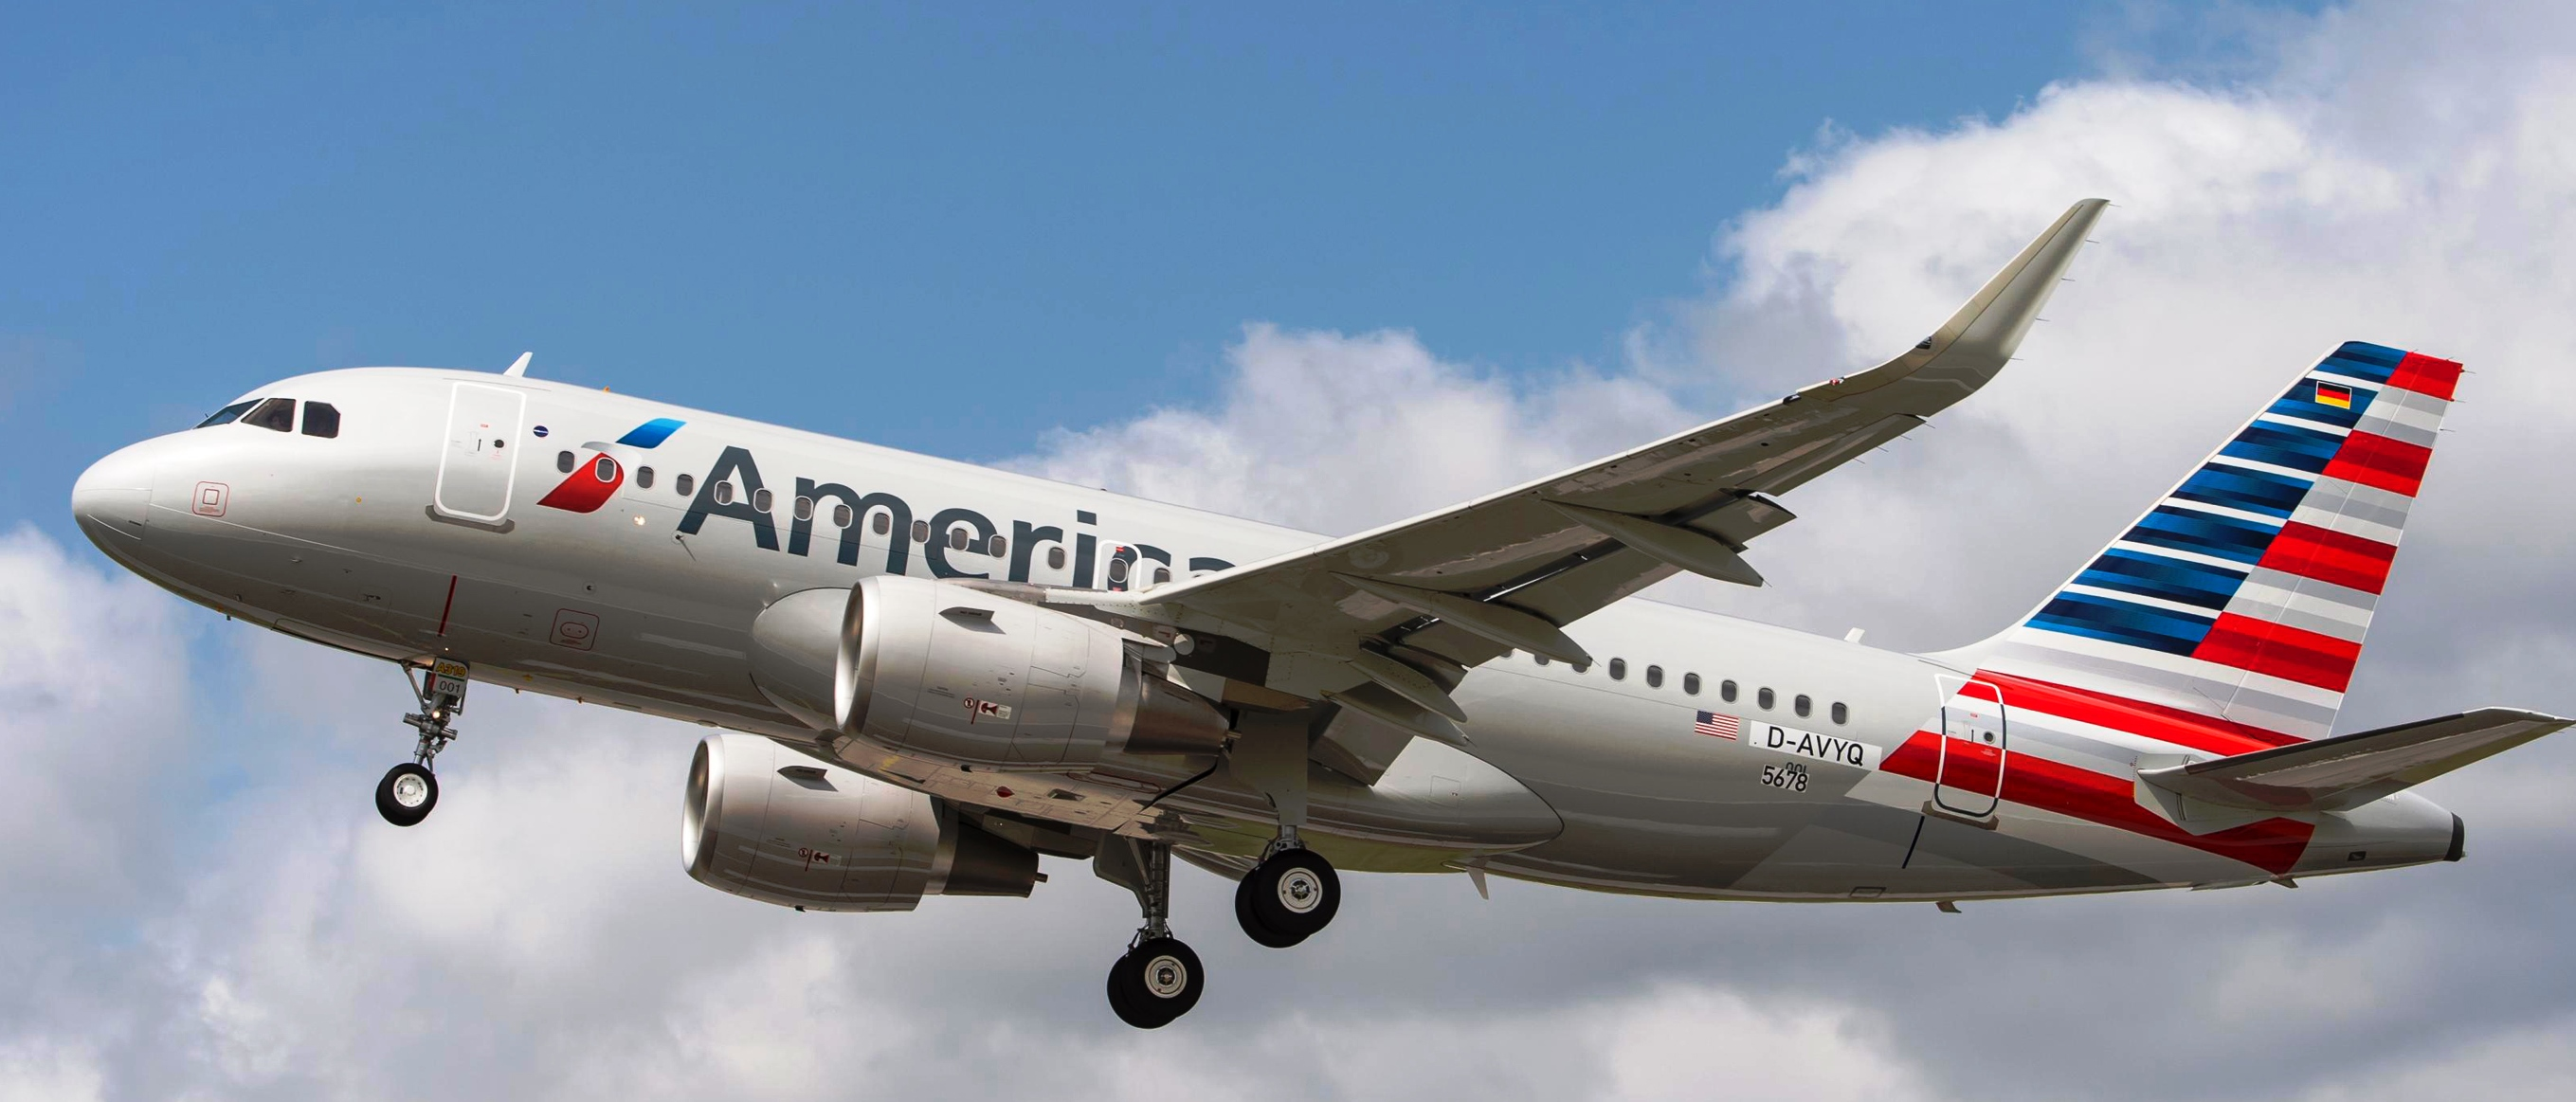 American Airlines Is Adding Another Daily Flight to Saint Lucia